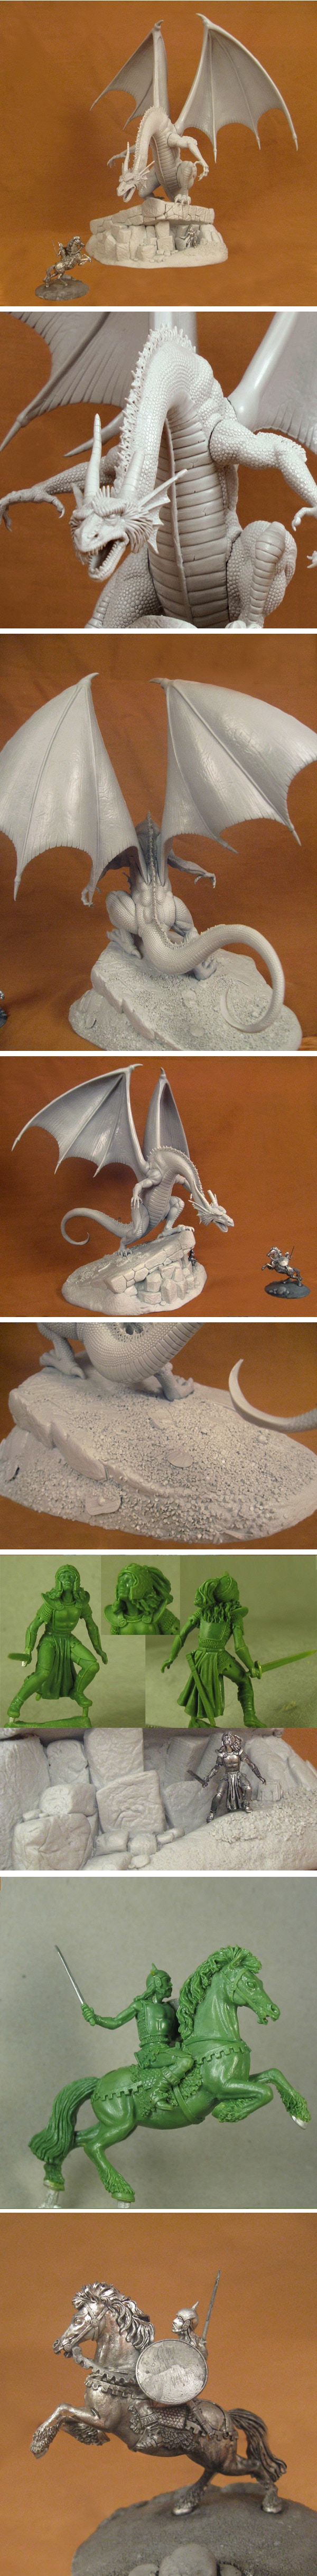 Pictures of the Special Edition Elmore Dragons Diorama